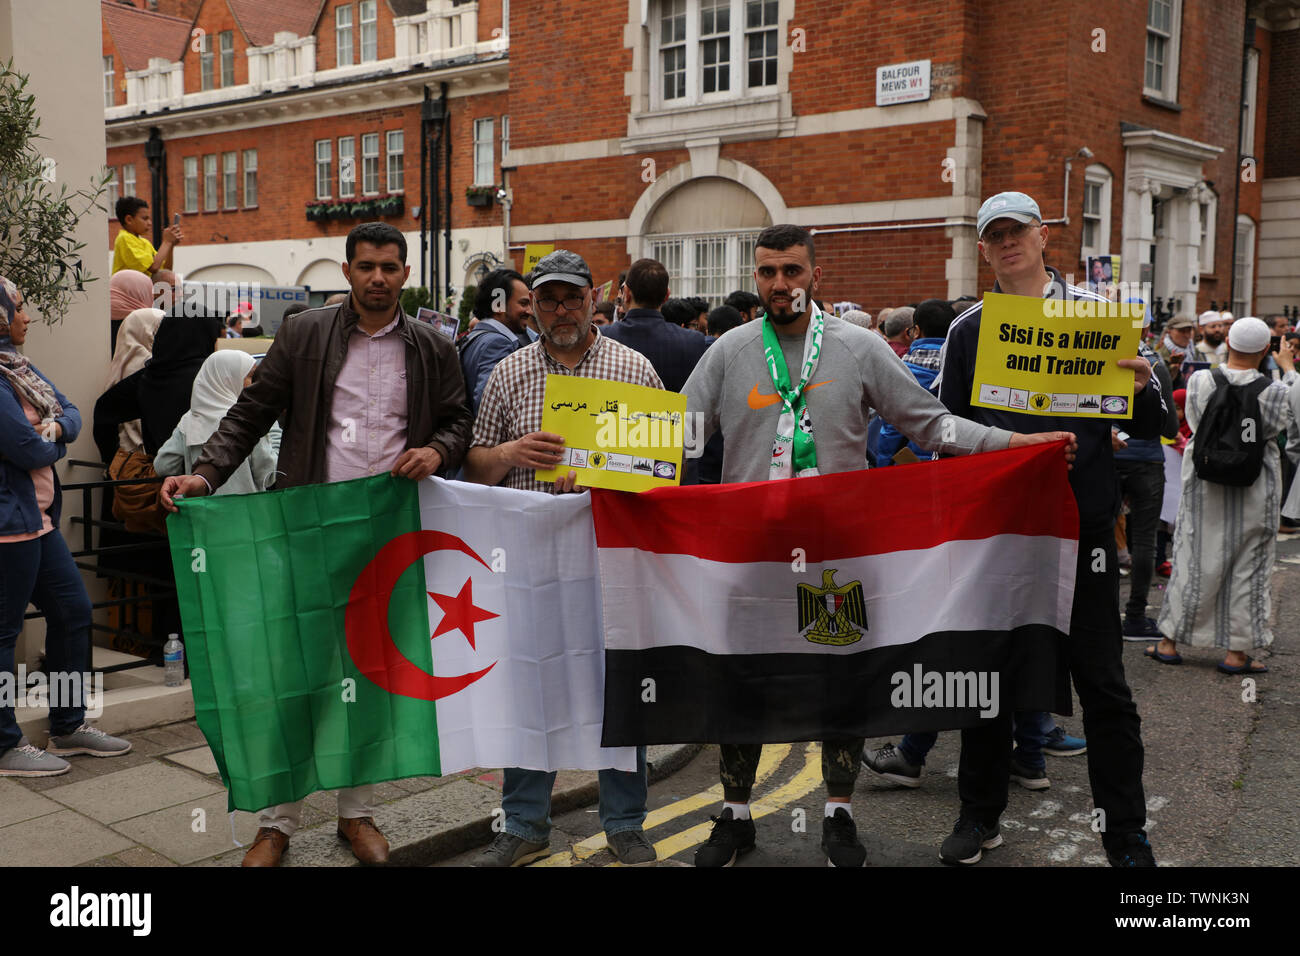 London, UK. 21st June 2019.  Protesters in front of the Egyptian embassy in London, with the Algerian and Egyptian flags, in remembrance of Morsi, who recently collapsed in court in Cairo. Credit: Joe Kuis / Alamy News Stock Photo